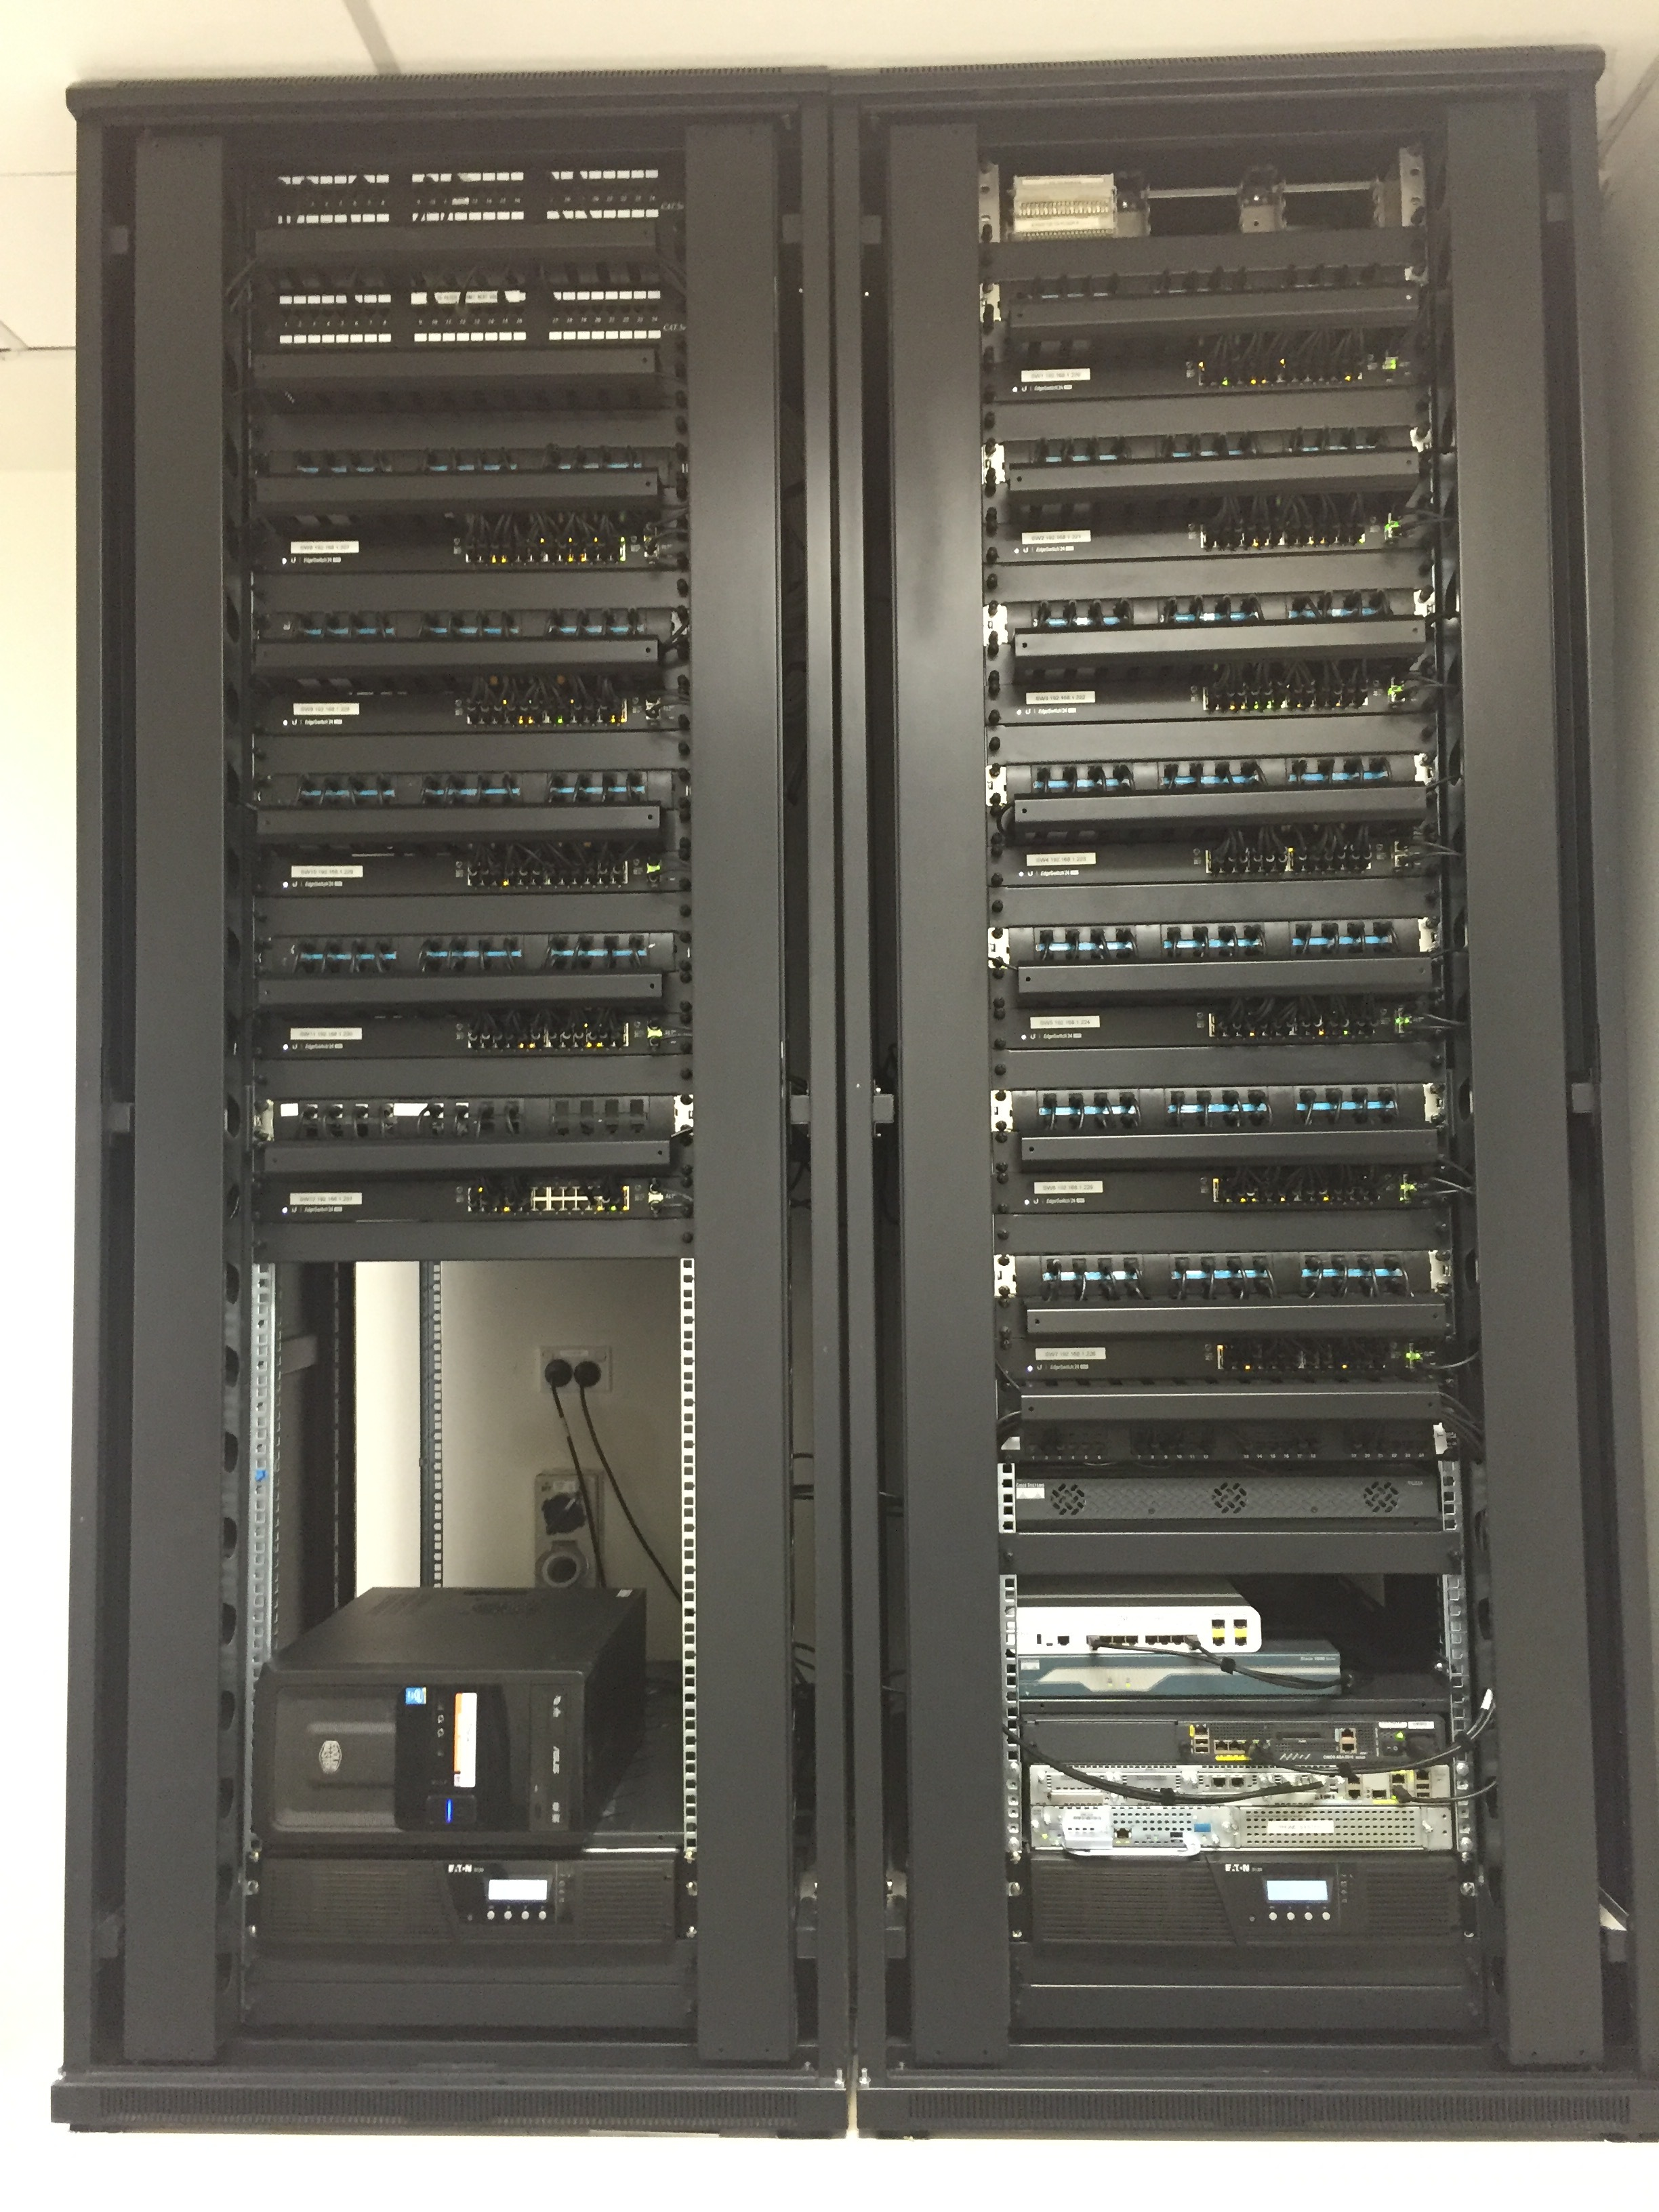 After: All equipment installed in new racks, before patching